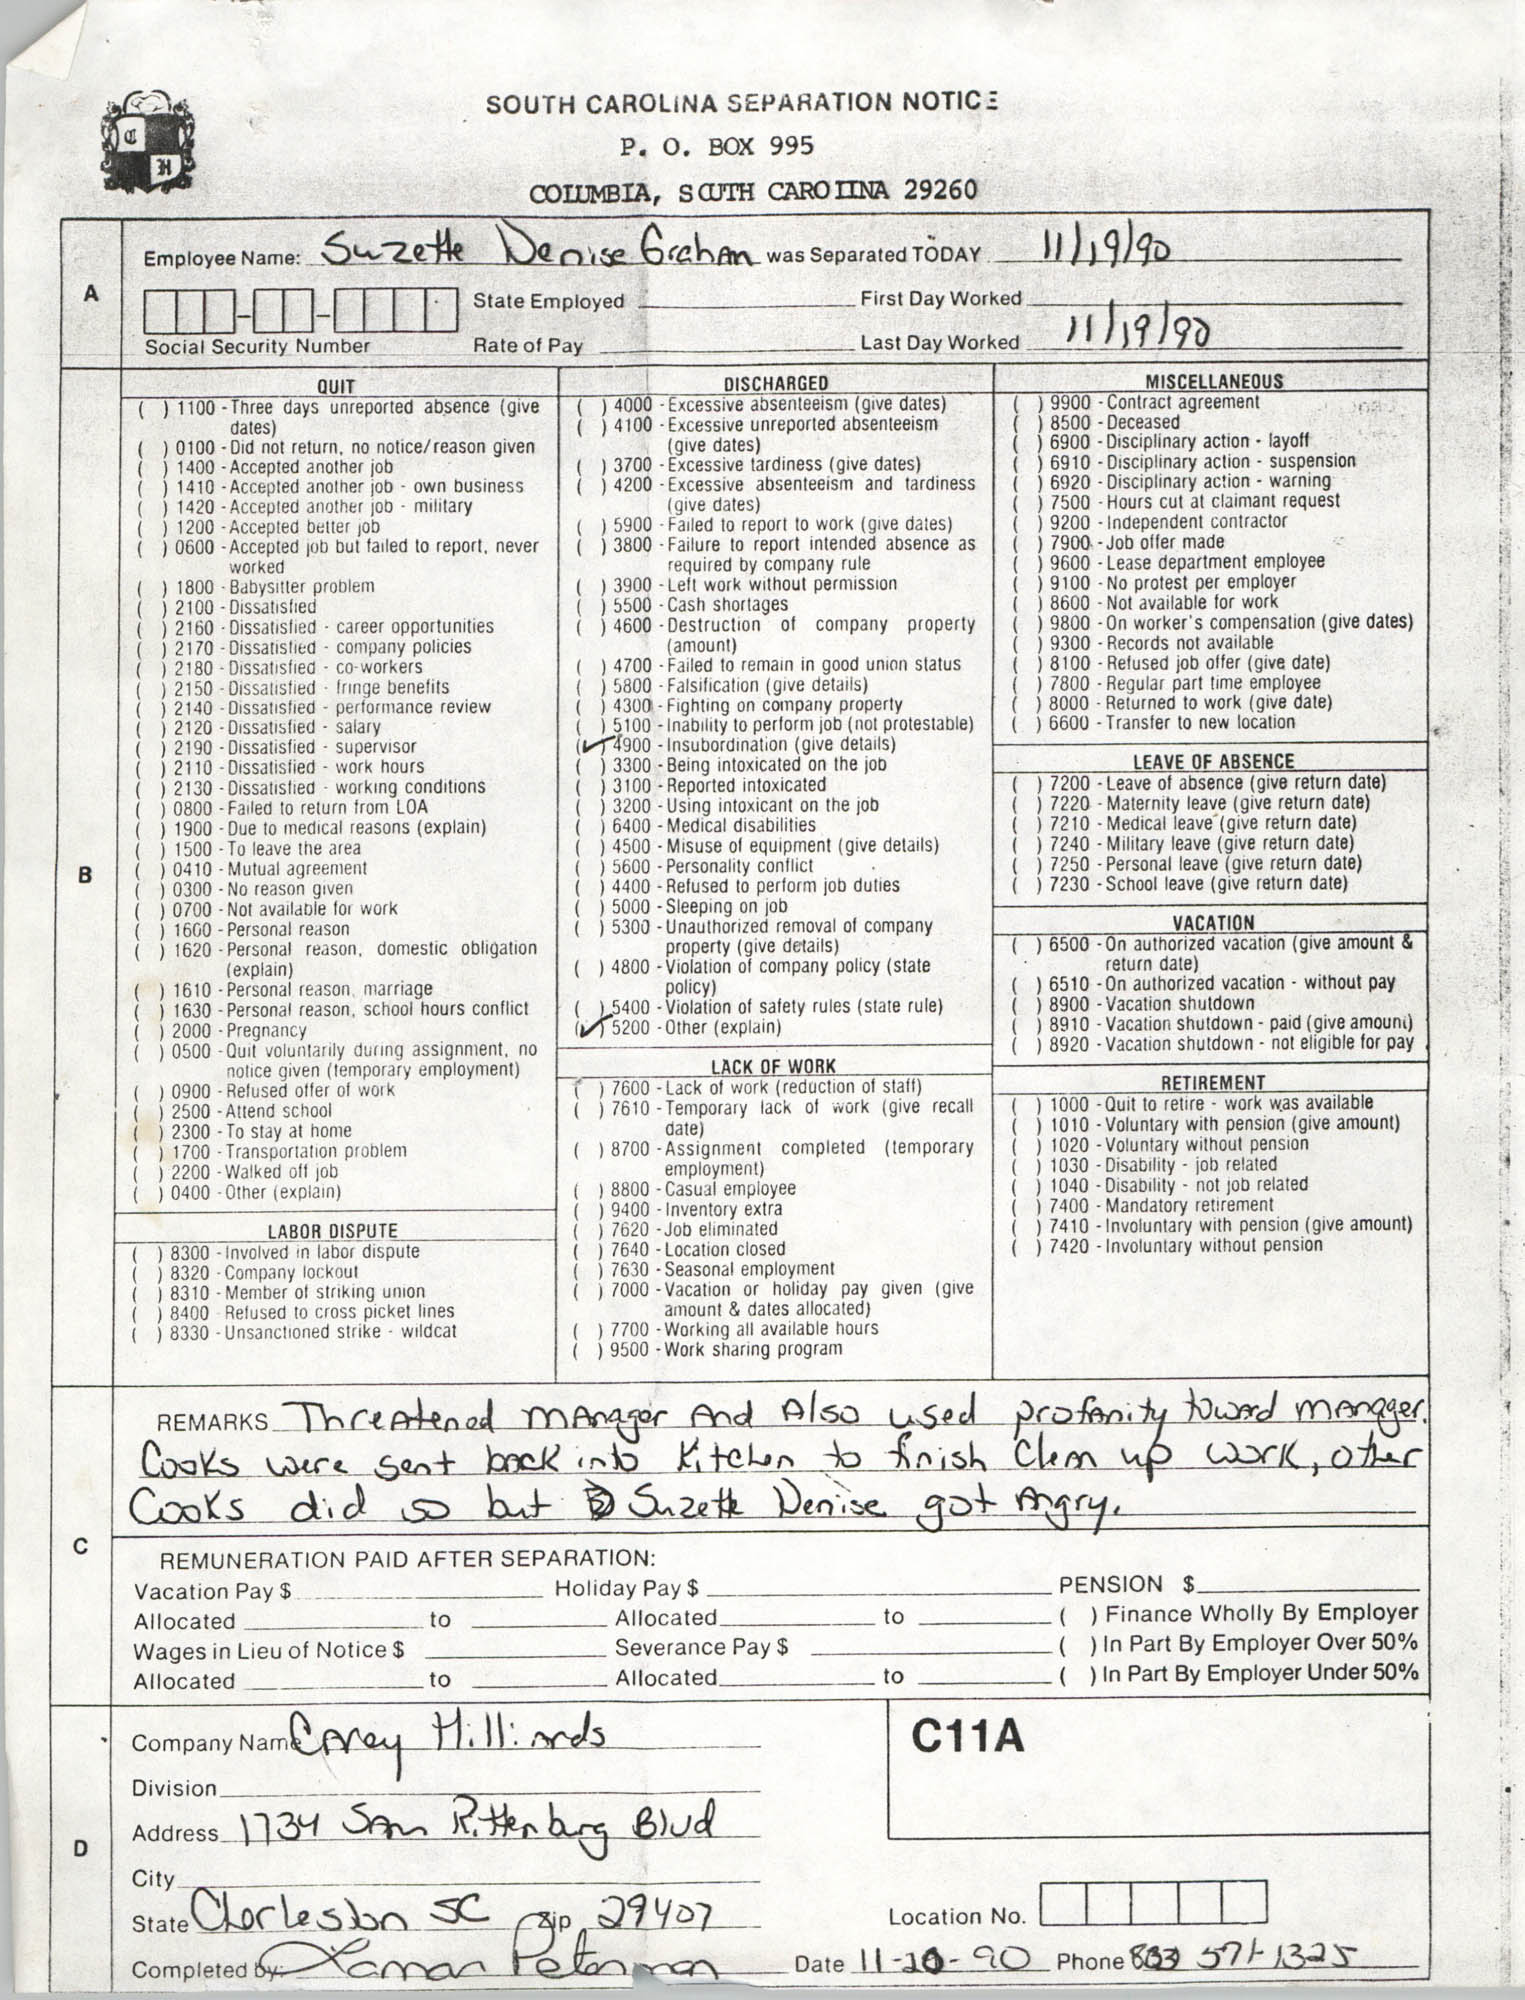 South Carolina Separation Notice Form, November 20, 1990